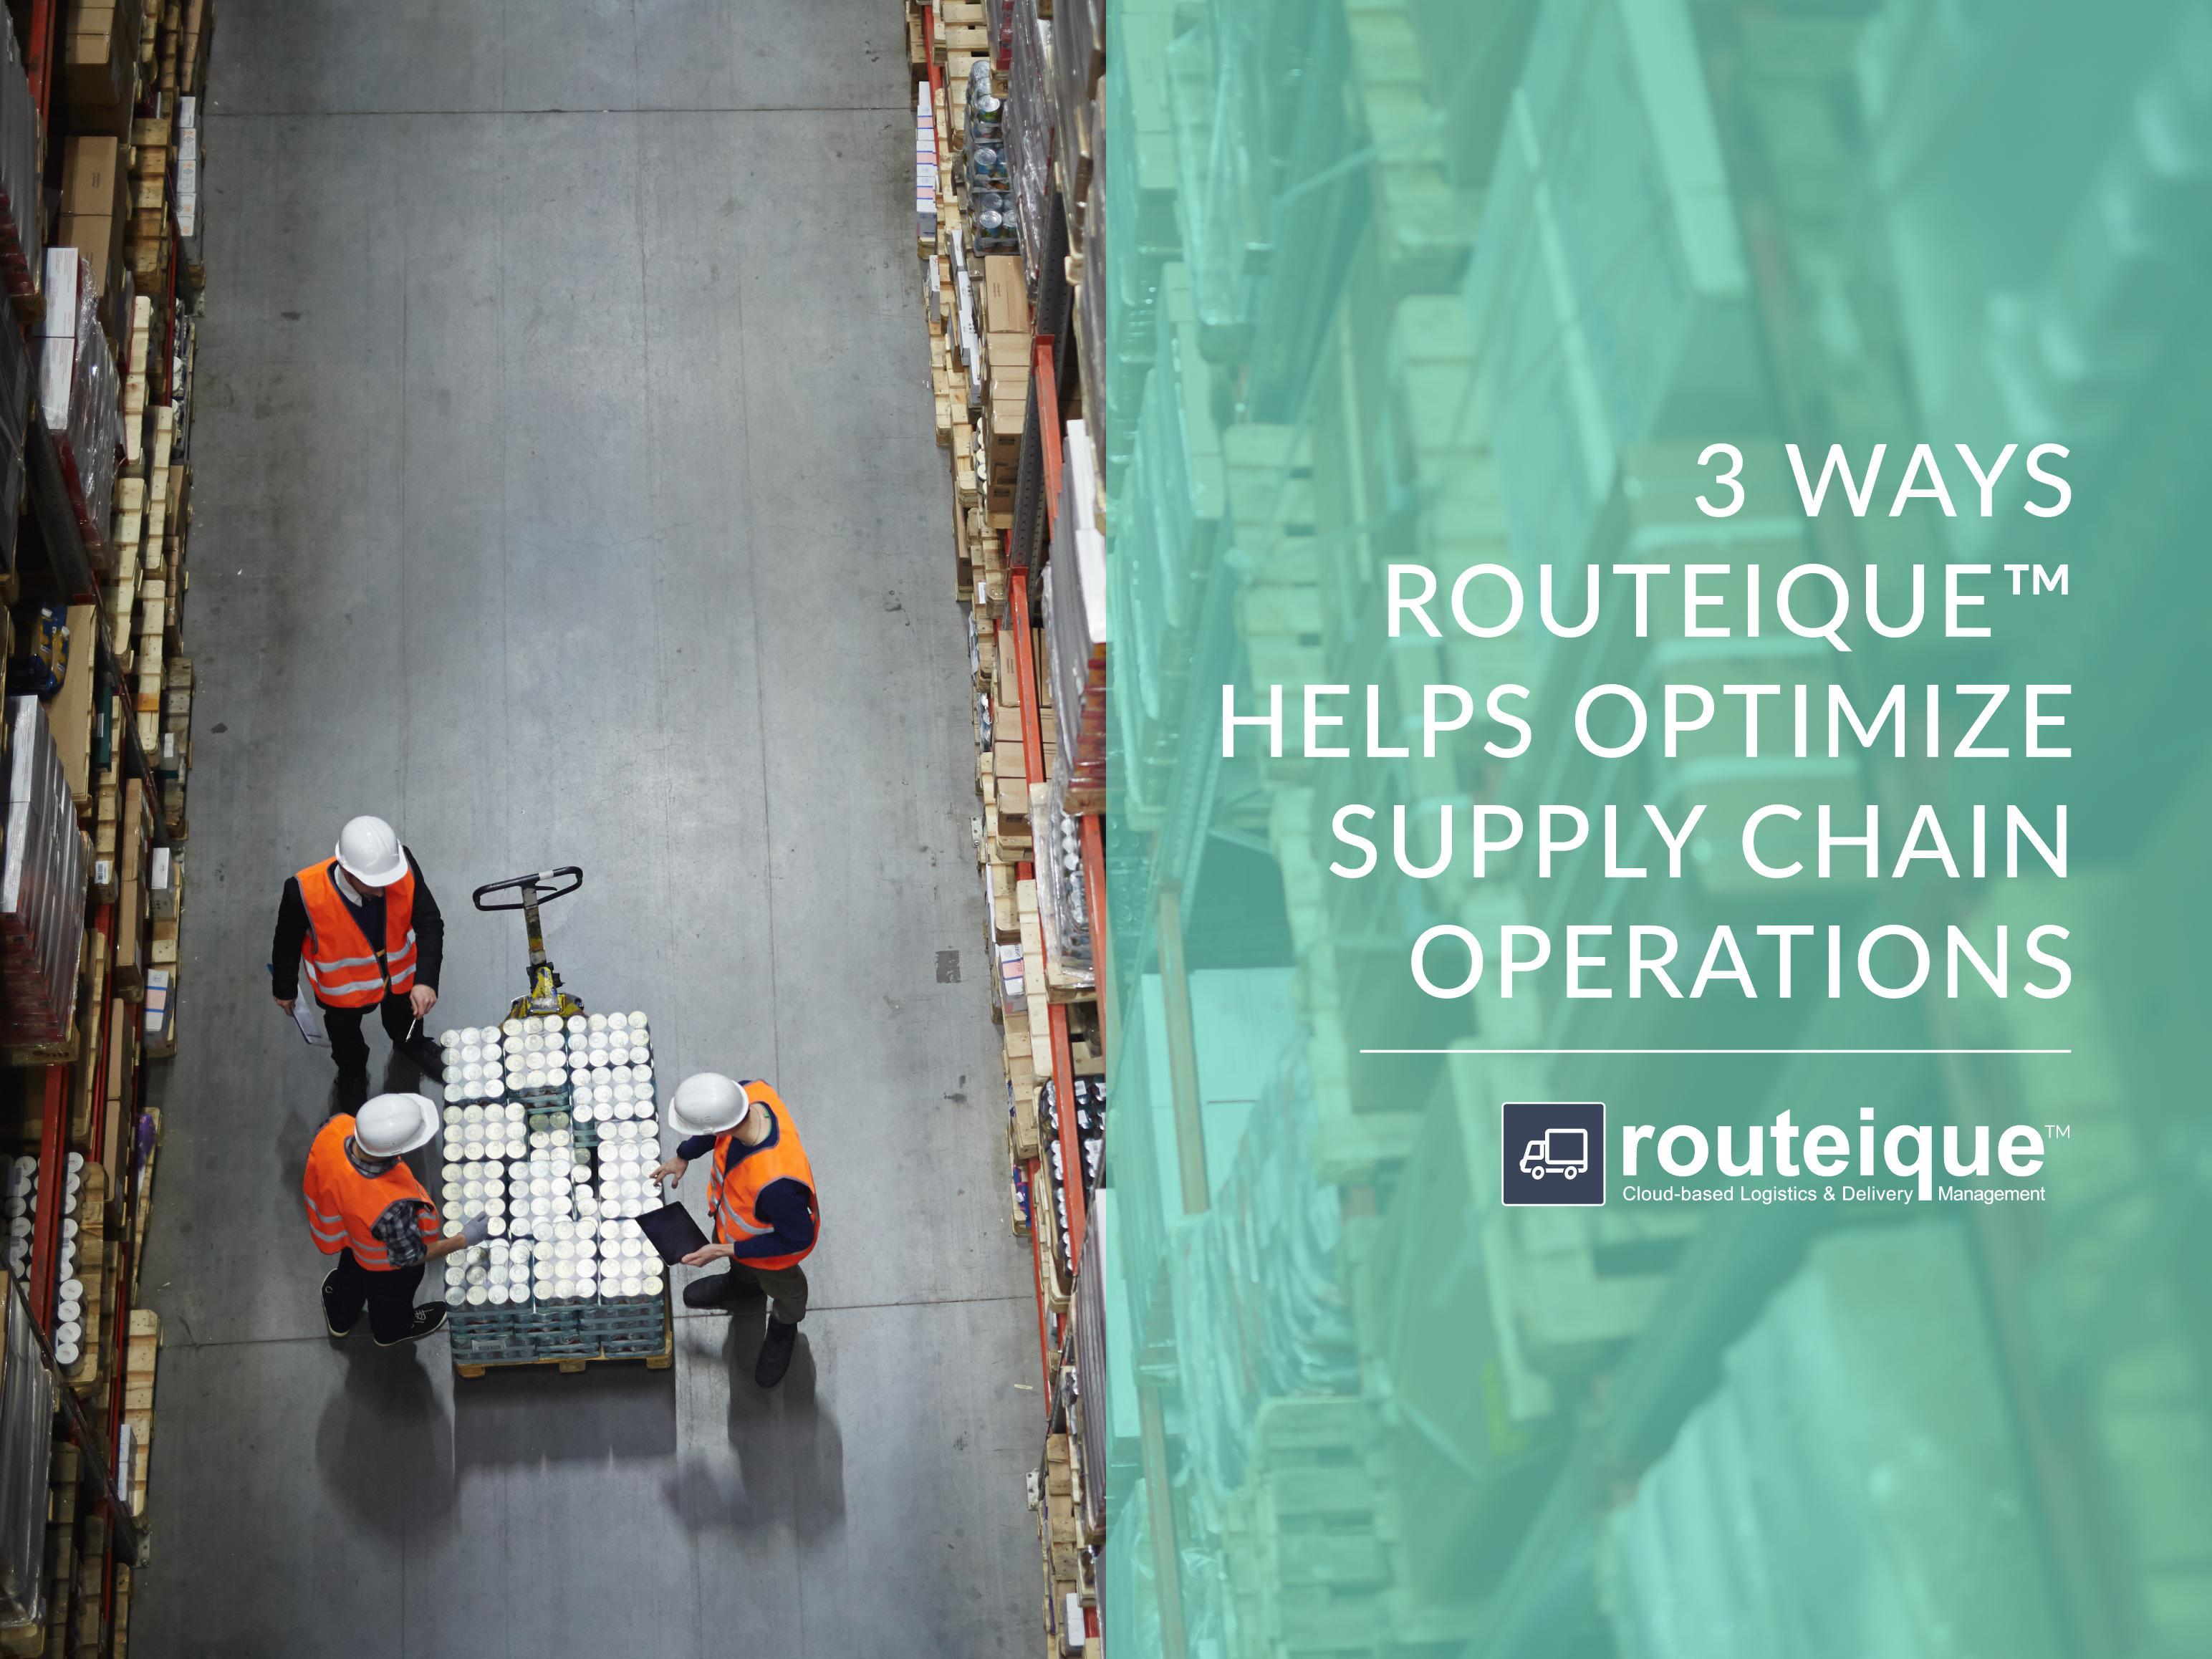 Routeique Warehouse Optimization